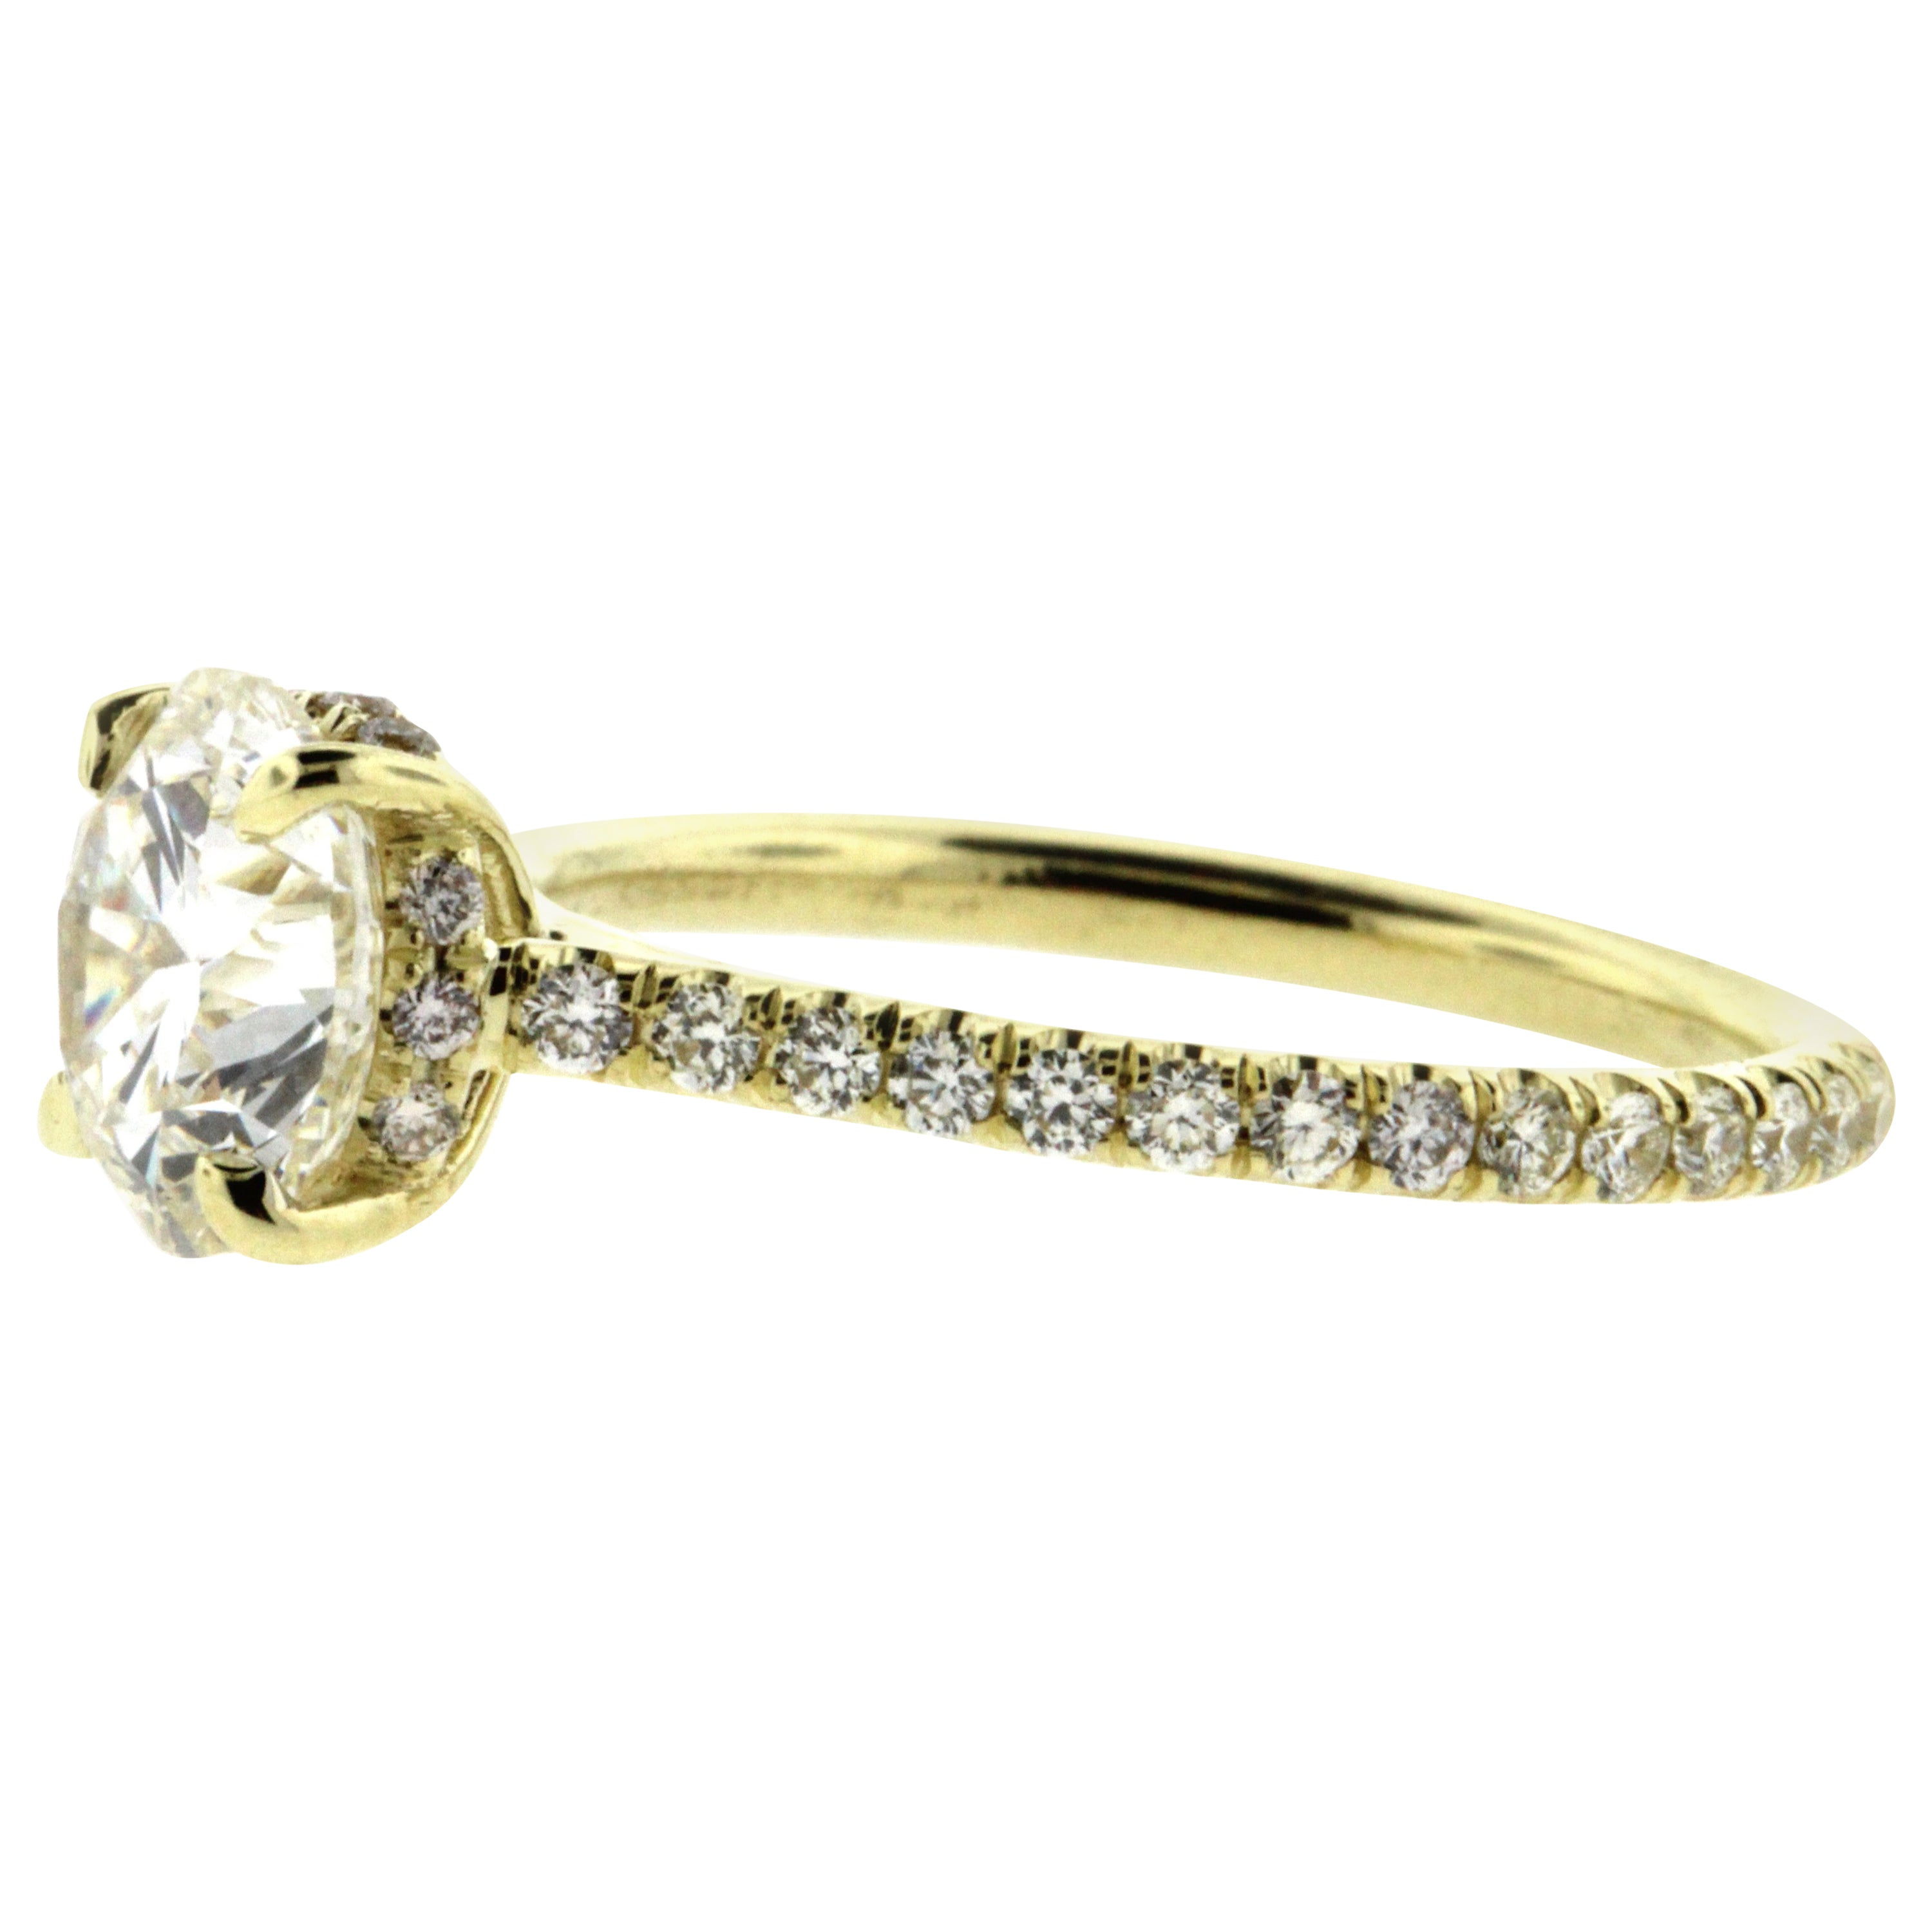 Hidden Halo Diamond Engagement Ring Yellow Gold Setting with Diamond Pave